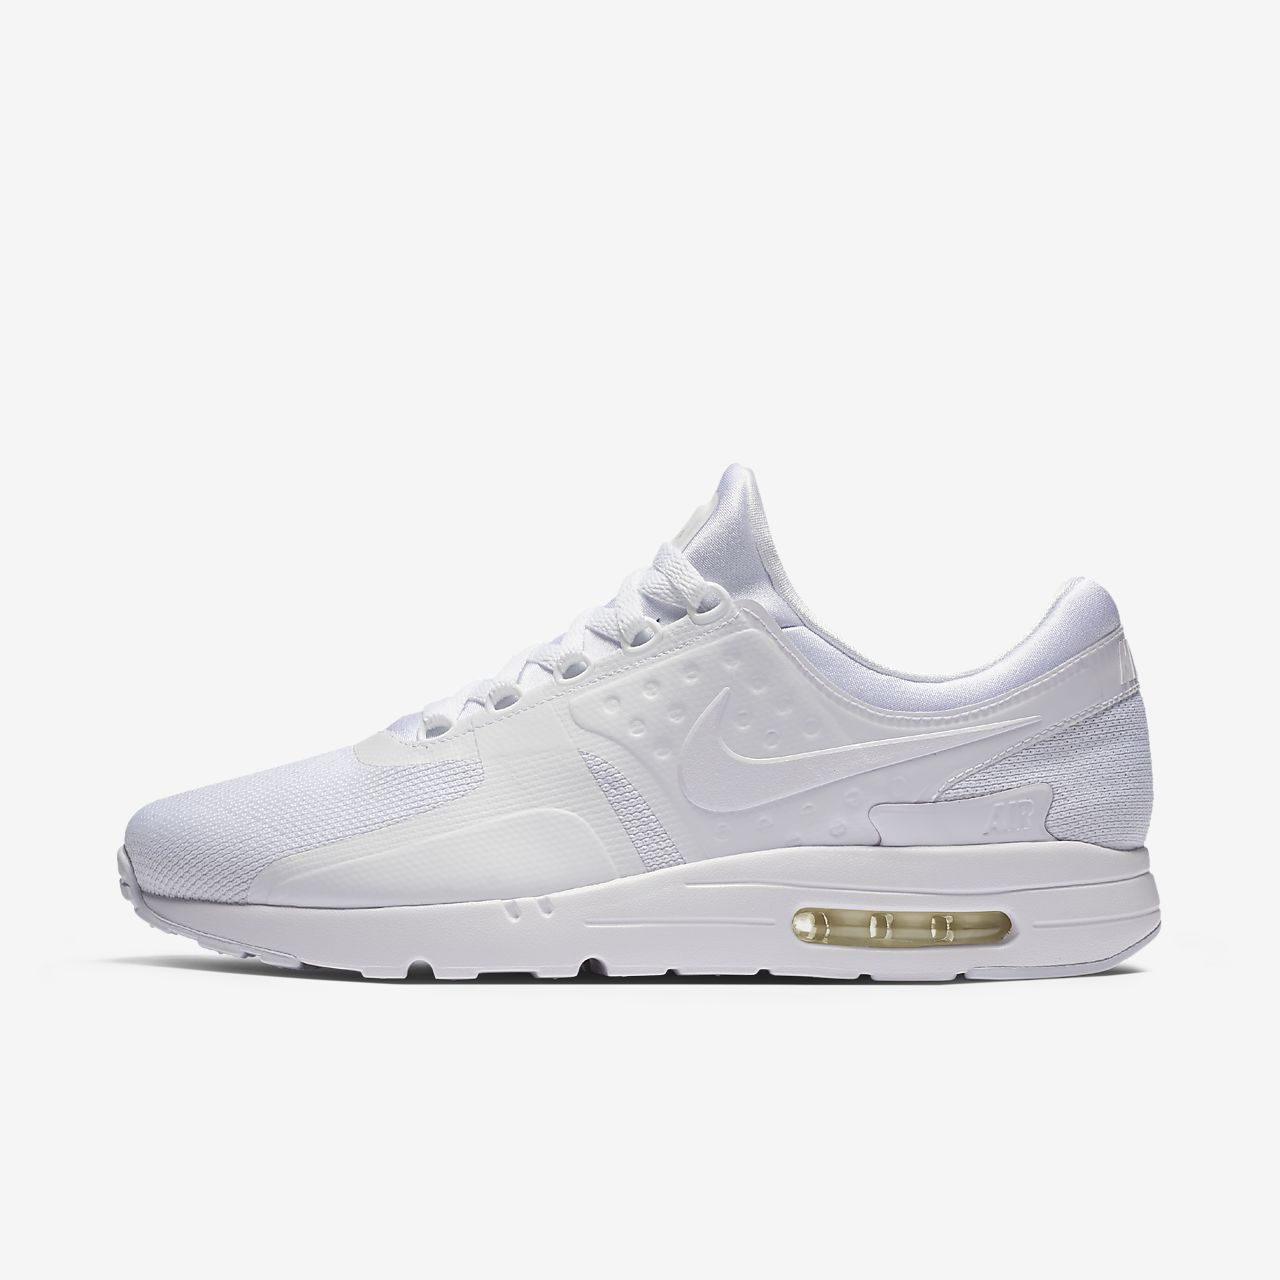 nikelab air max 1 flyknit nz